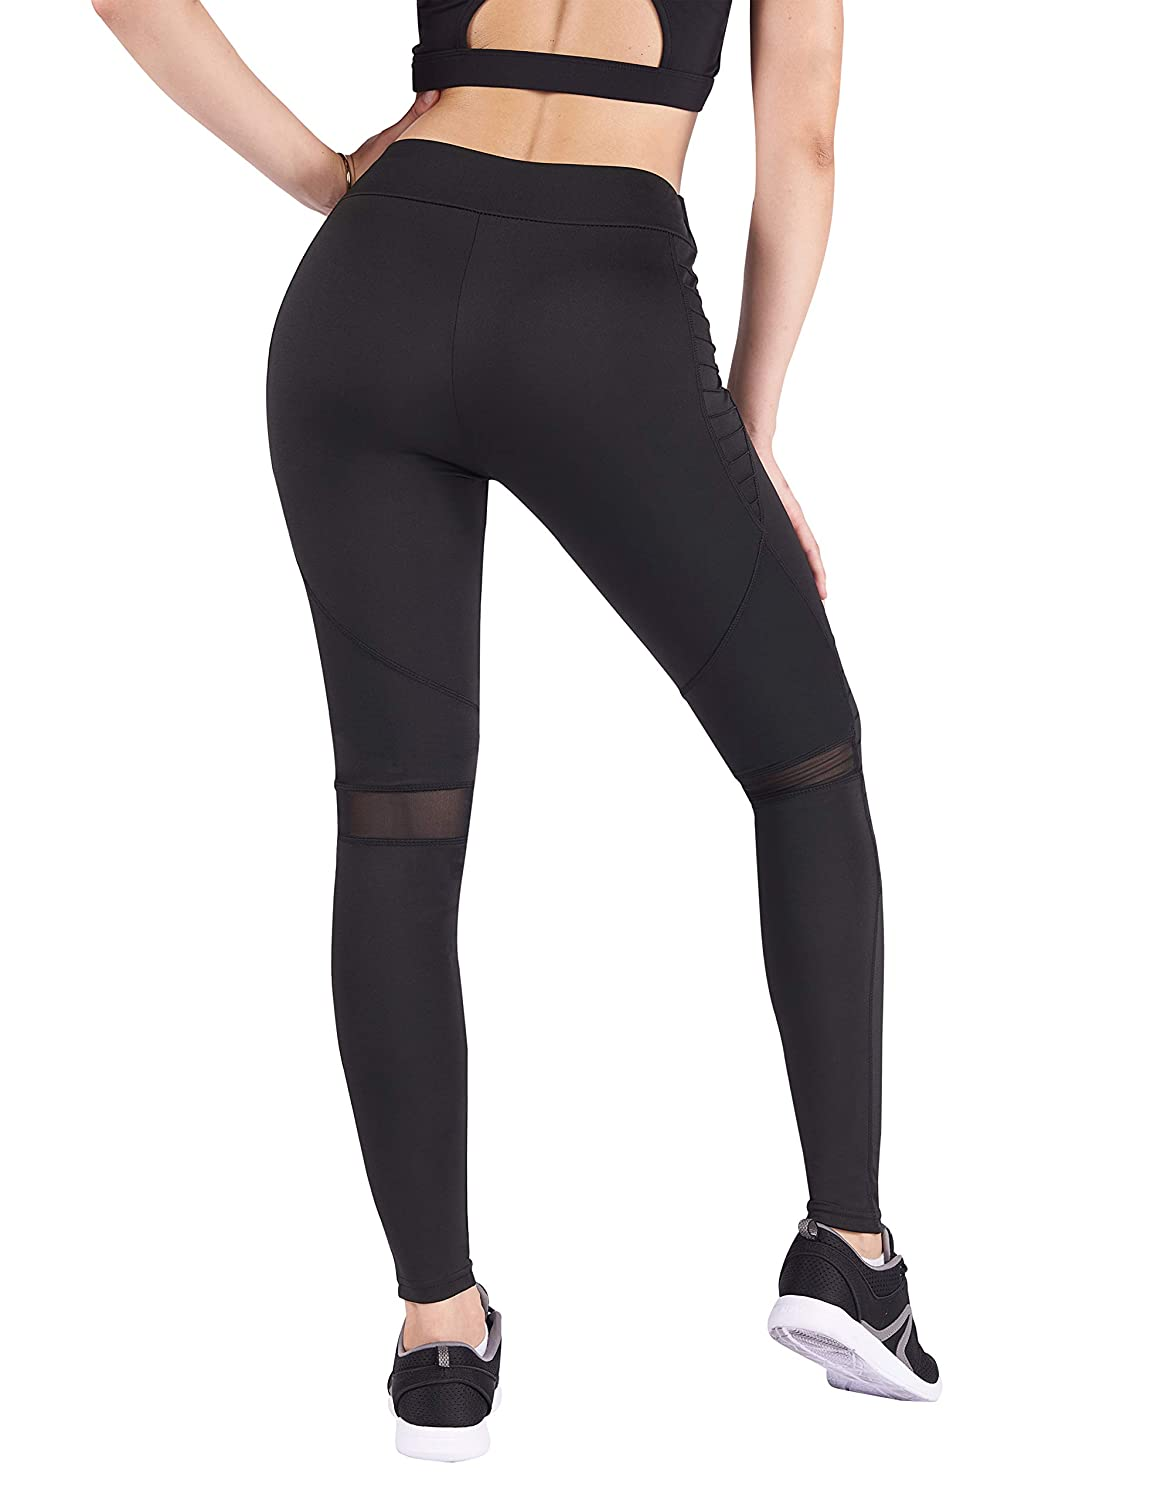 Kblack DrKr High Waist Yoga Pants Tummy Control Workout Leggings for Women